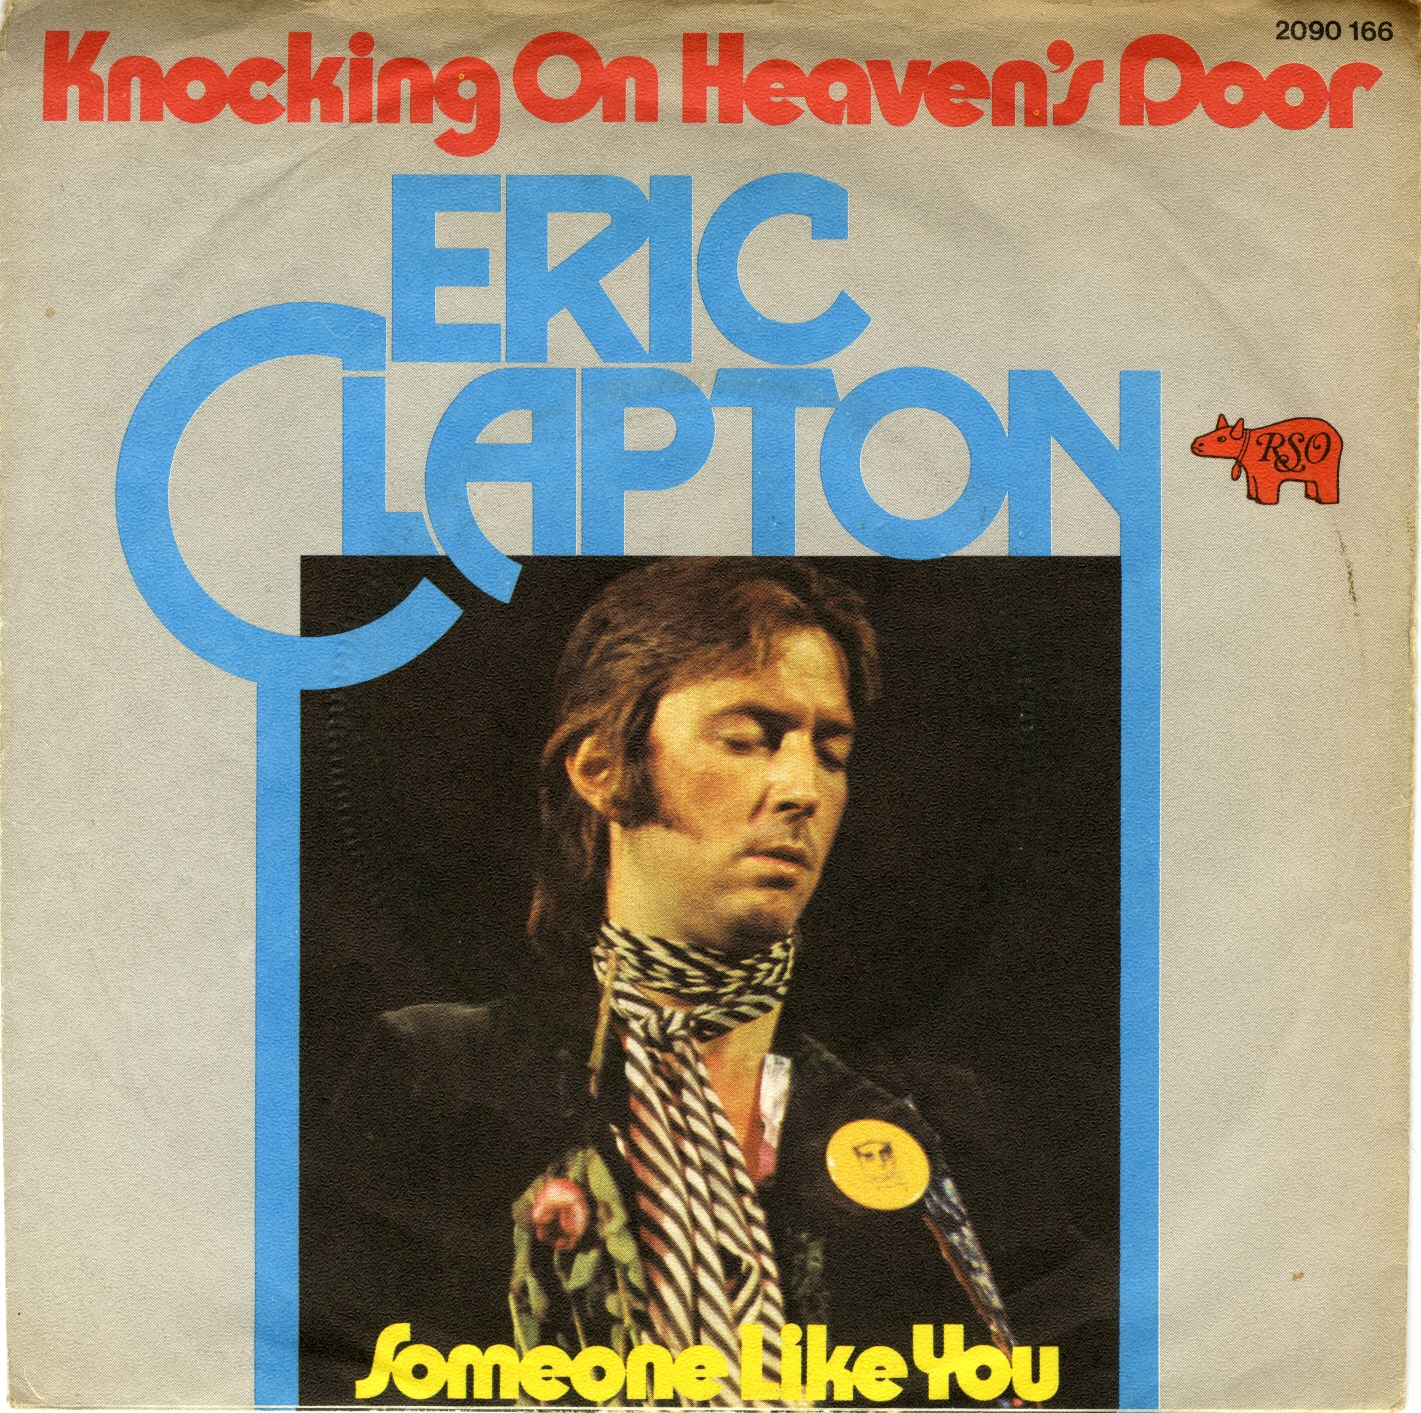 Cover: Knocking on heaven's door, Eric Clapton